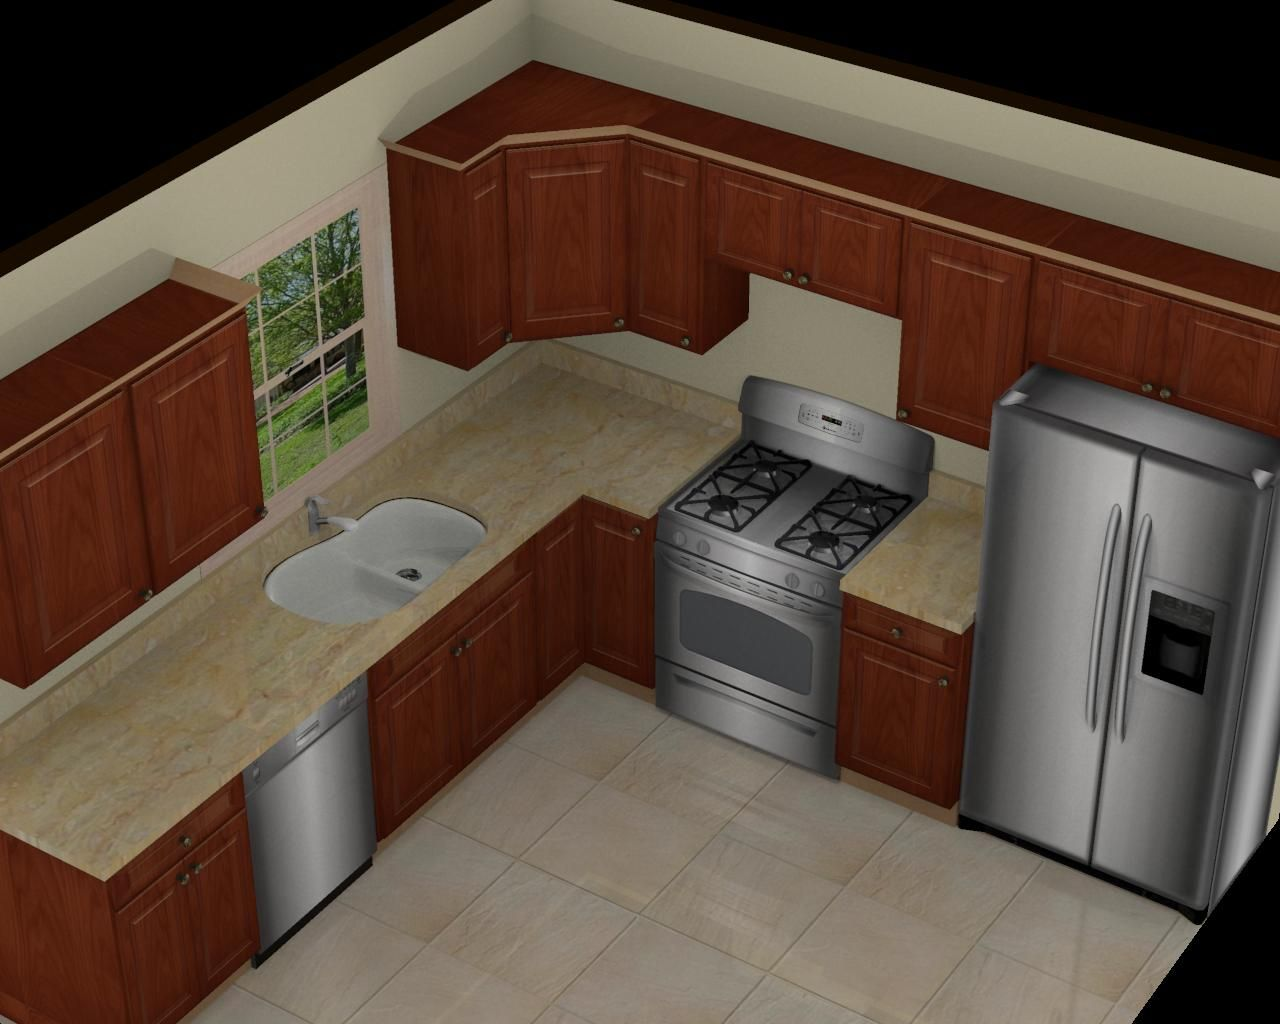 Uncategorized 10 X 10 Kitchen Designs there are many ideas kitchen design that you can do to remodel 10